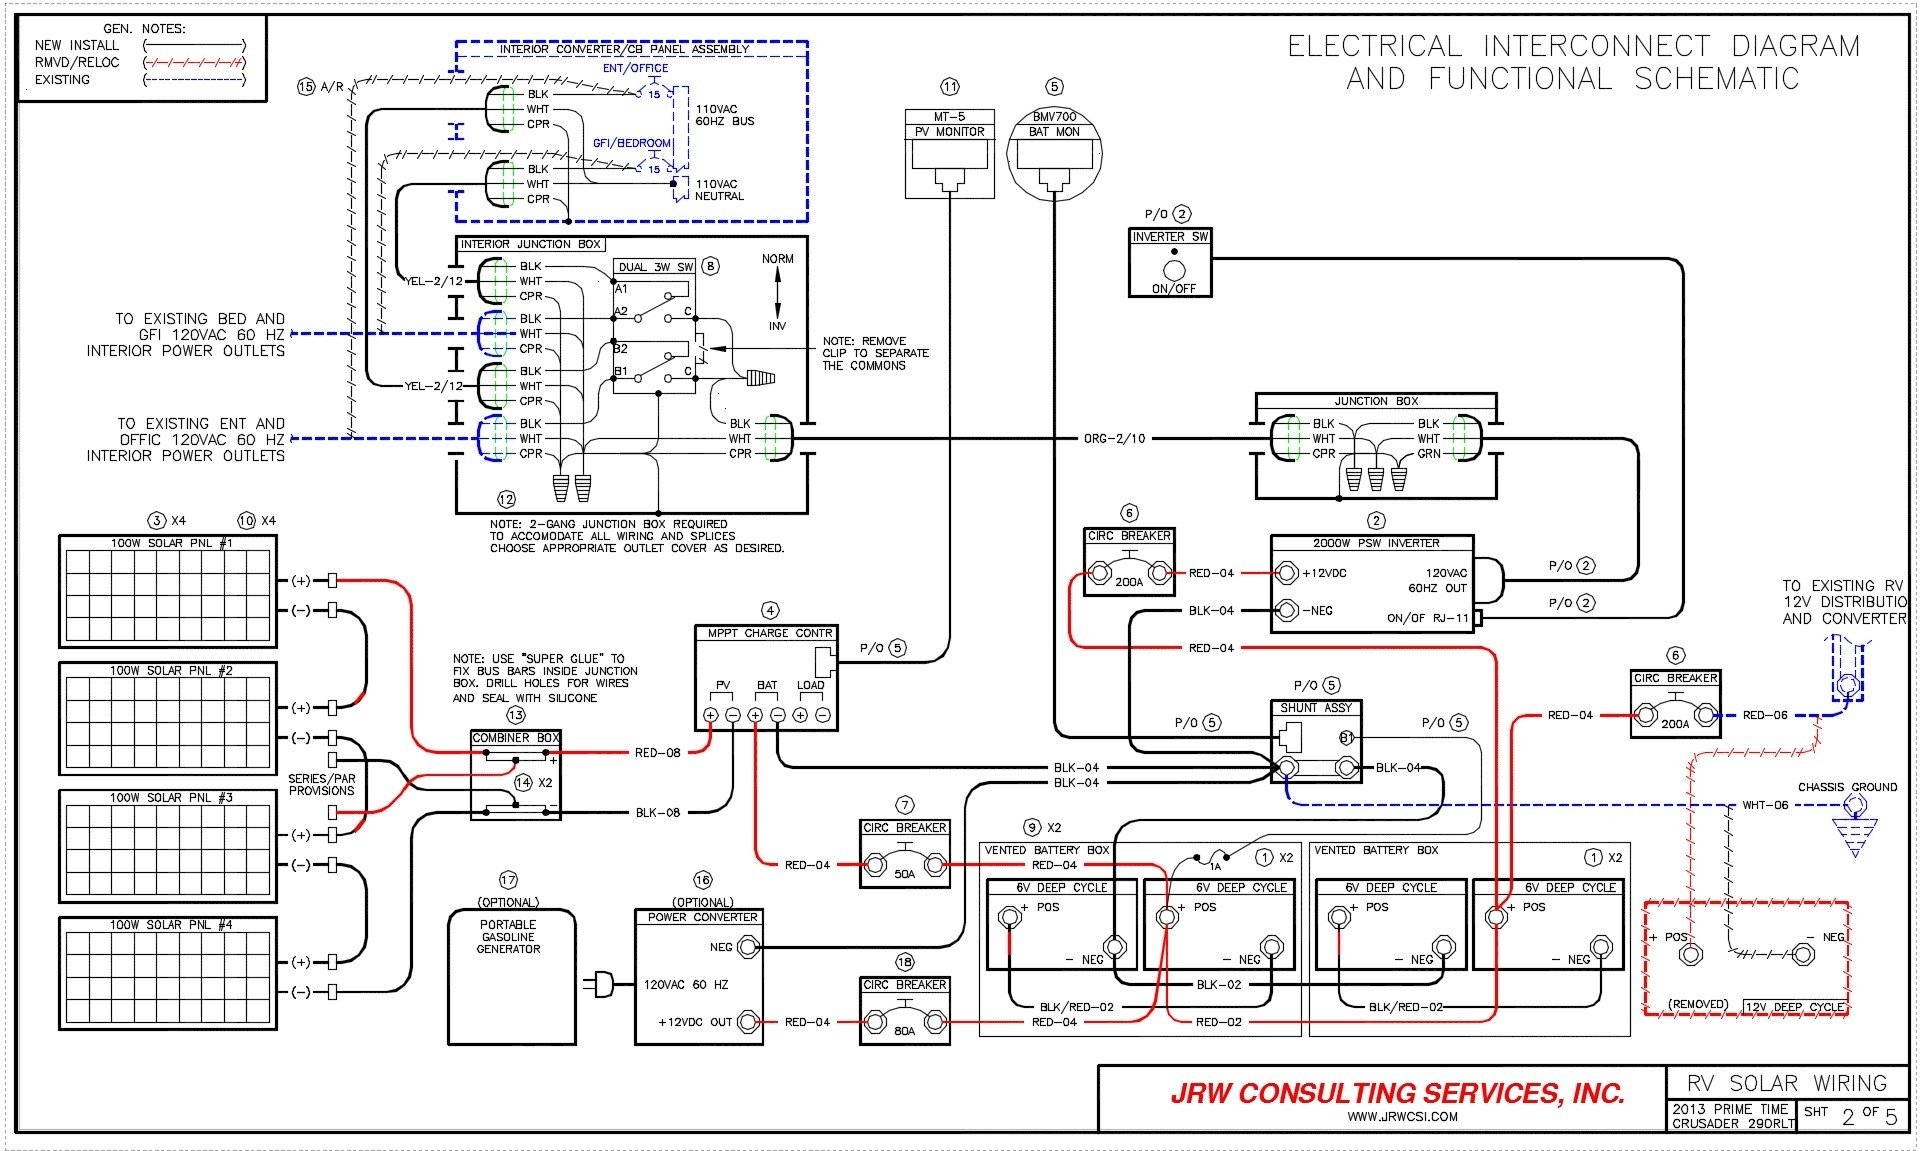 rv converter wiring schematic Download-Wiring Diagram solar Panels Inverter Refrence solar Panels Wiring Diagram Installation Awesome Content Rv Power 17-p